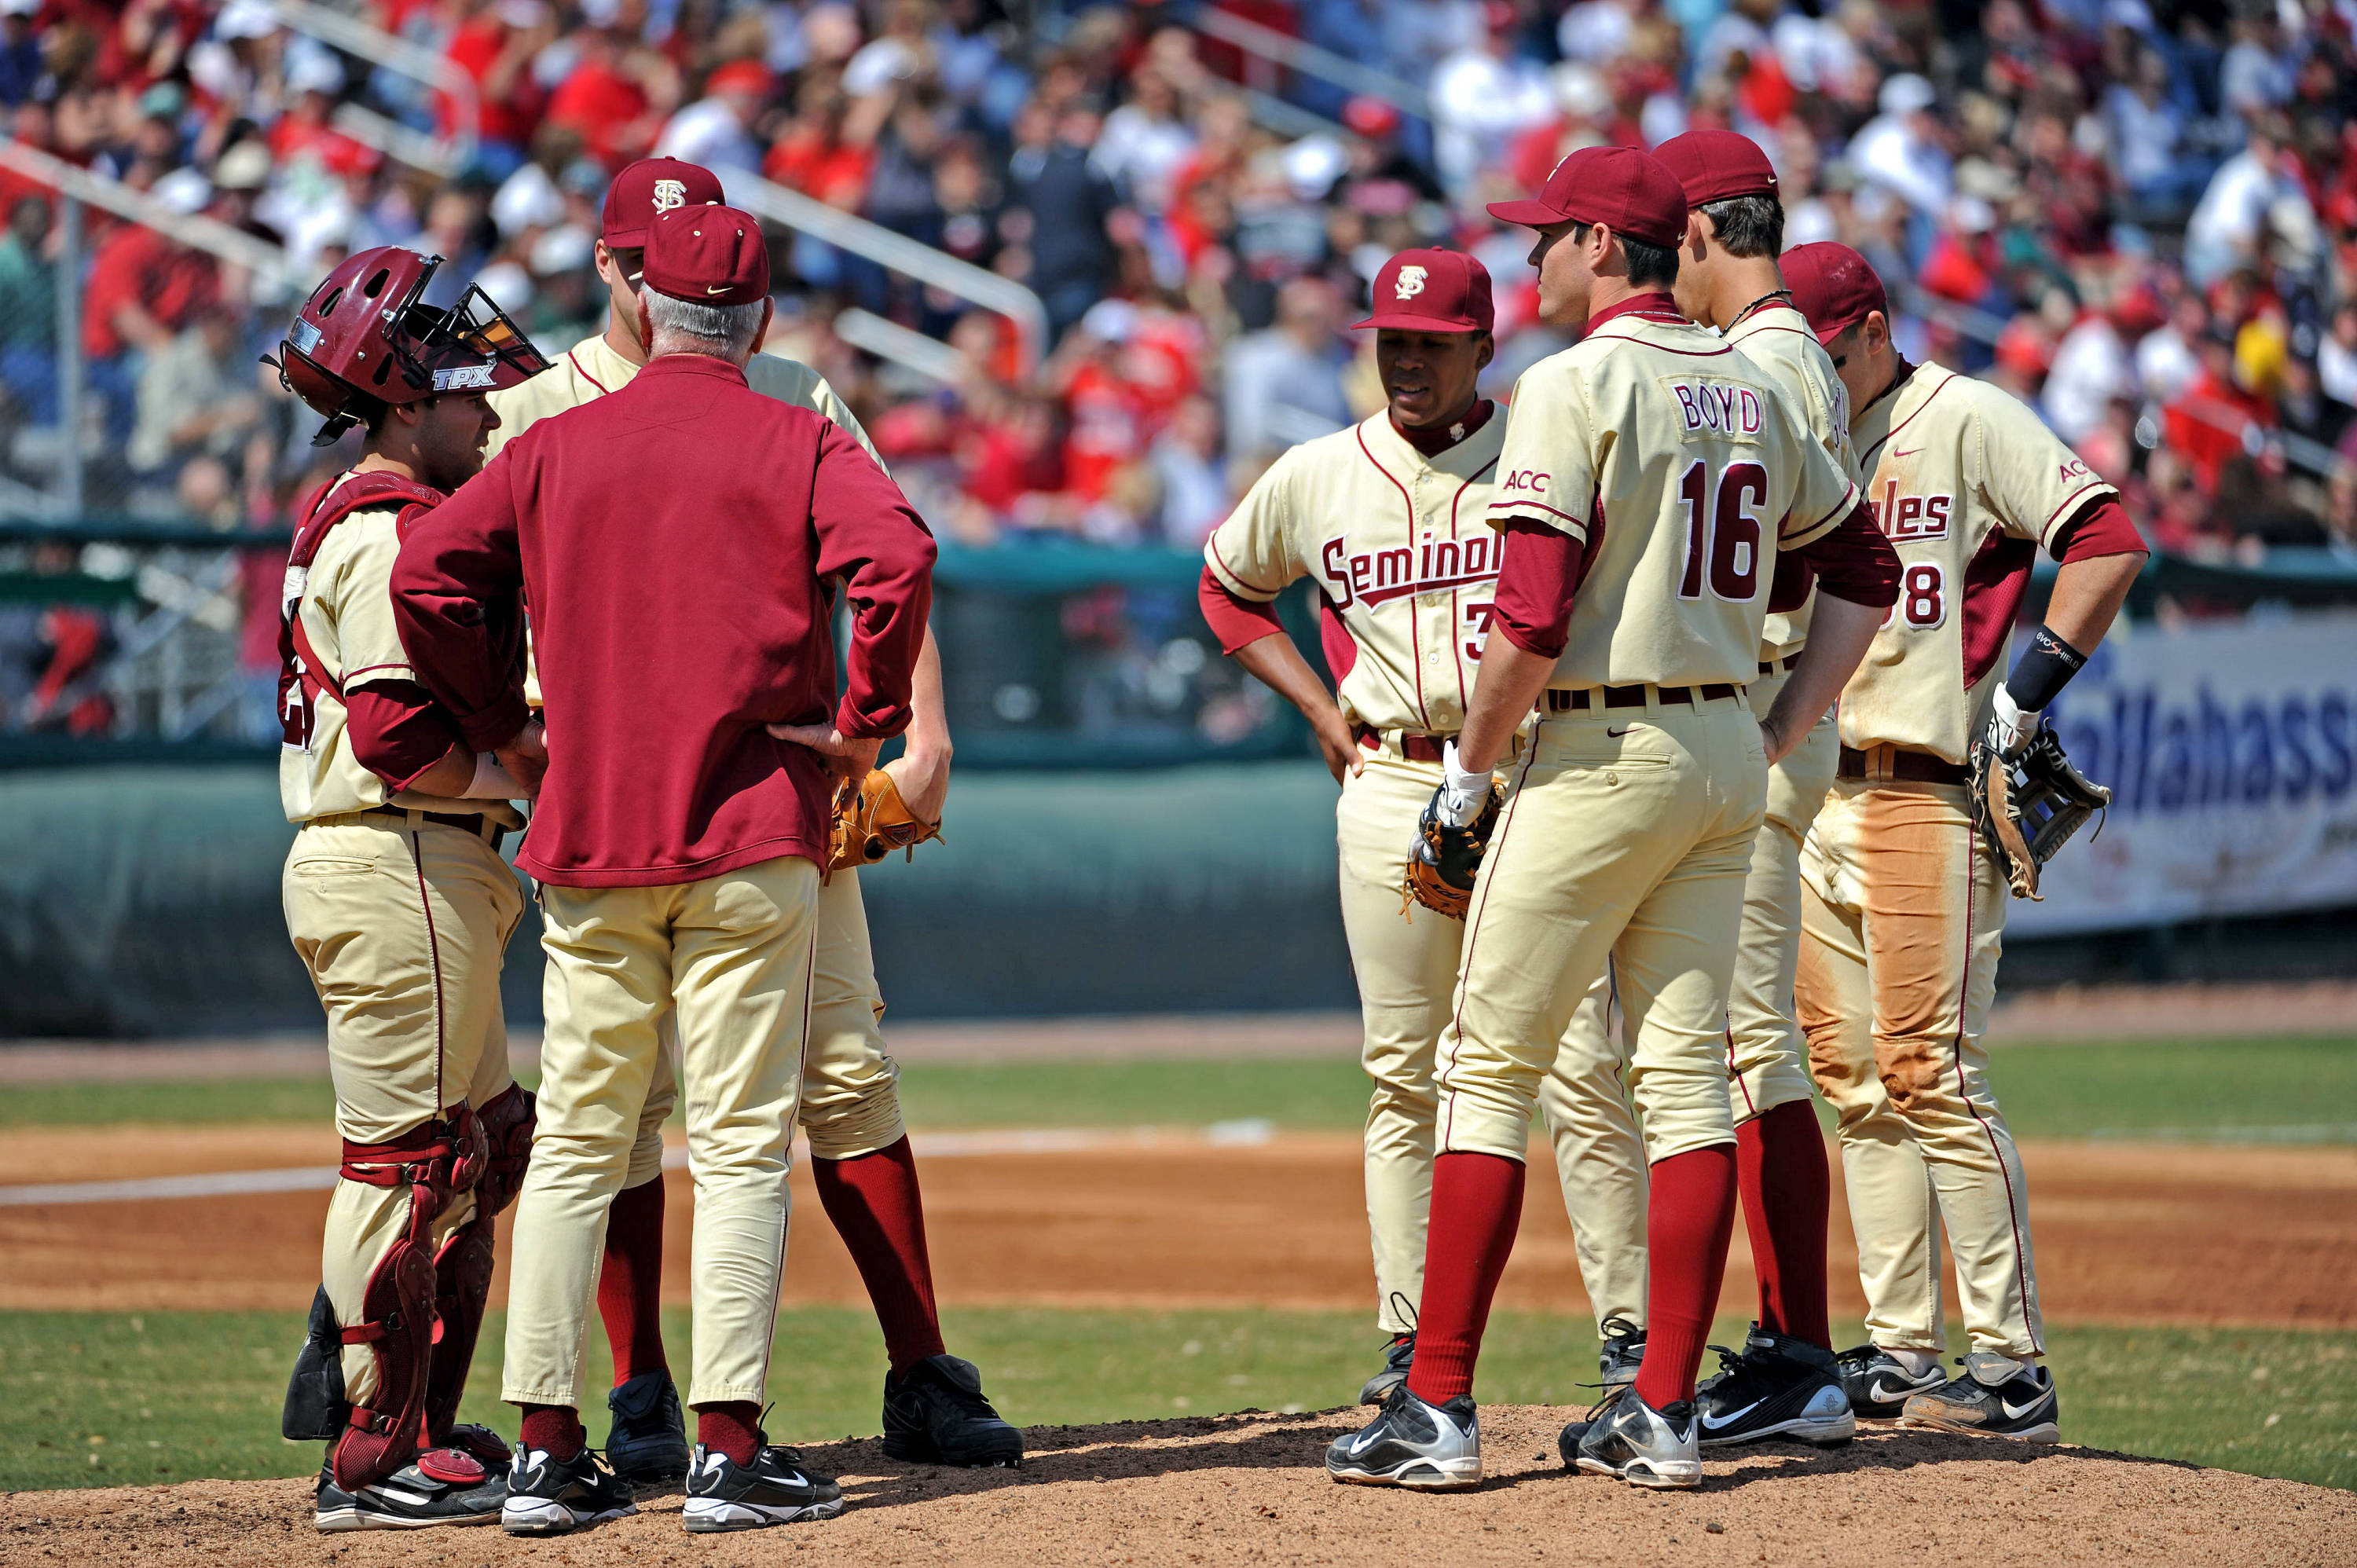 Head coach Mike Martin meets with the Seminoles at the mound.